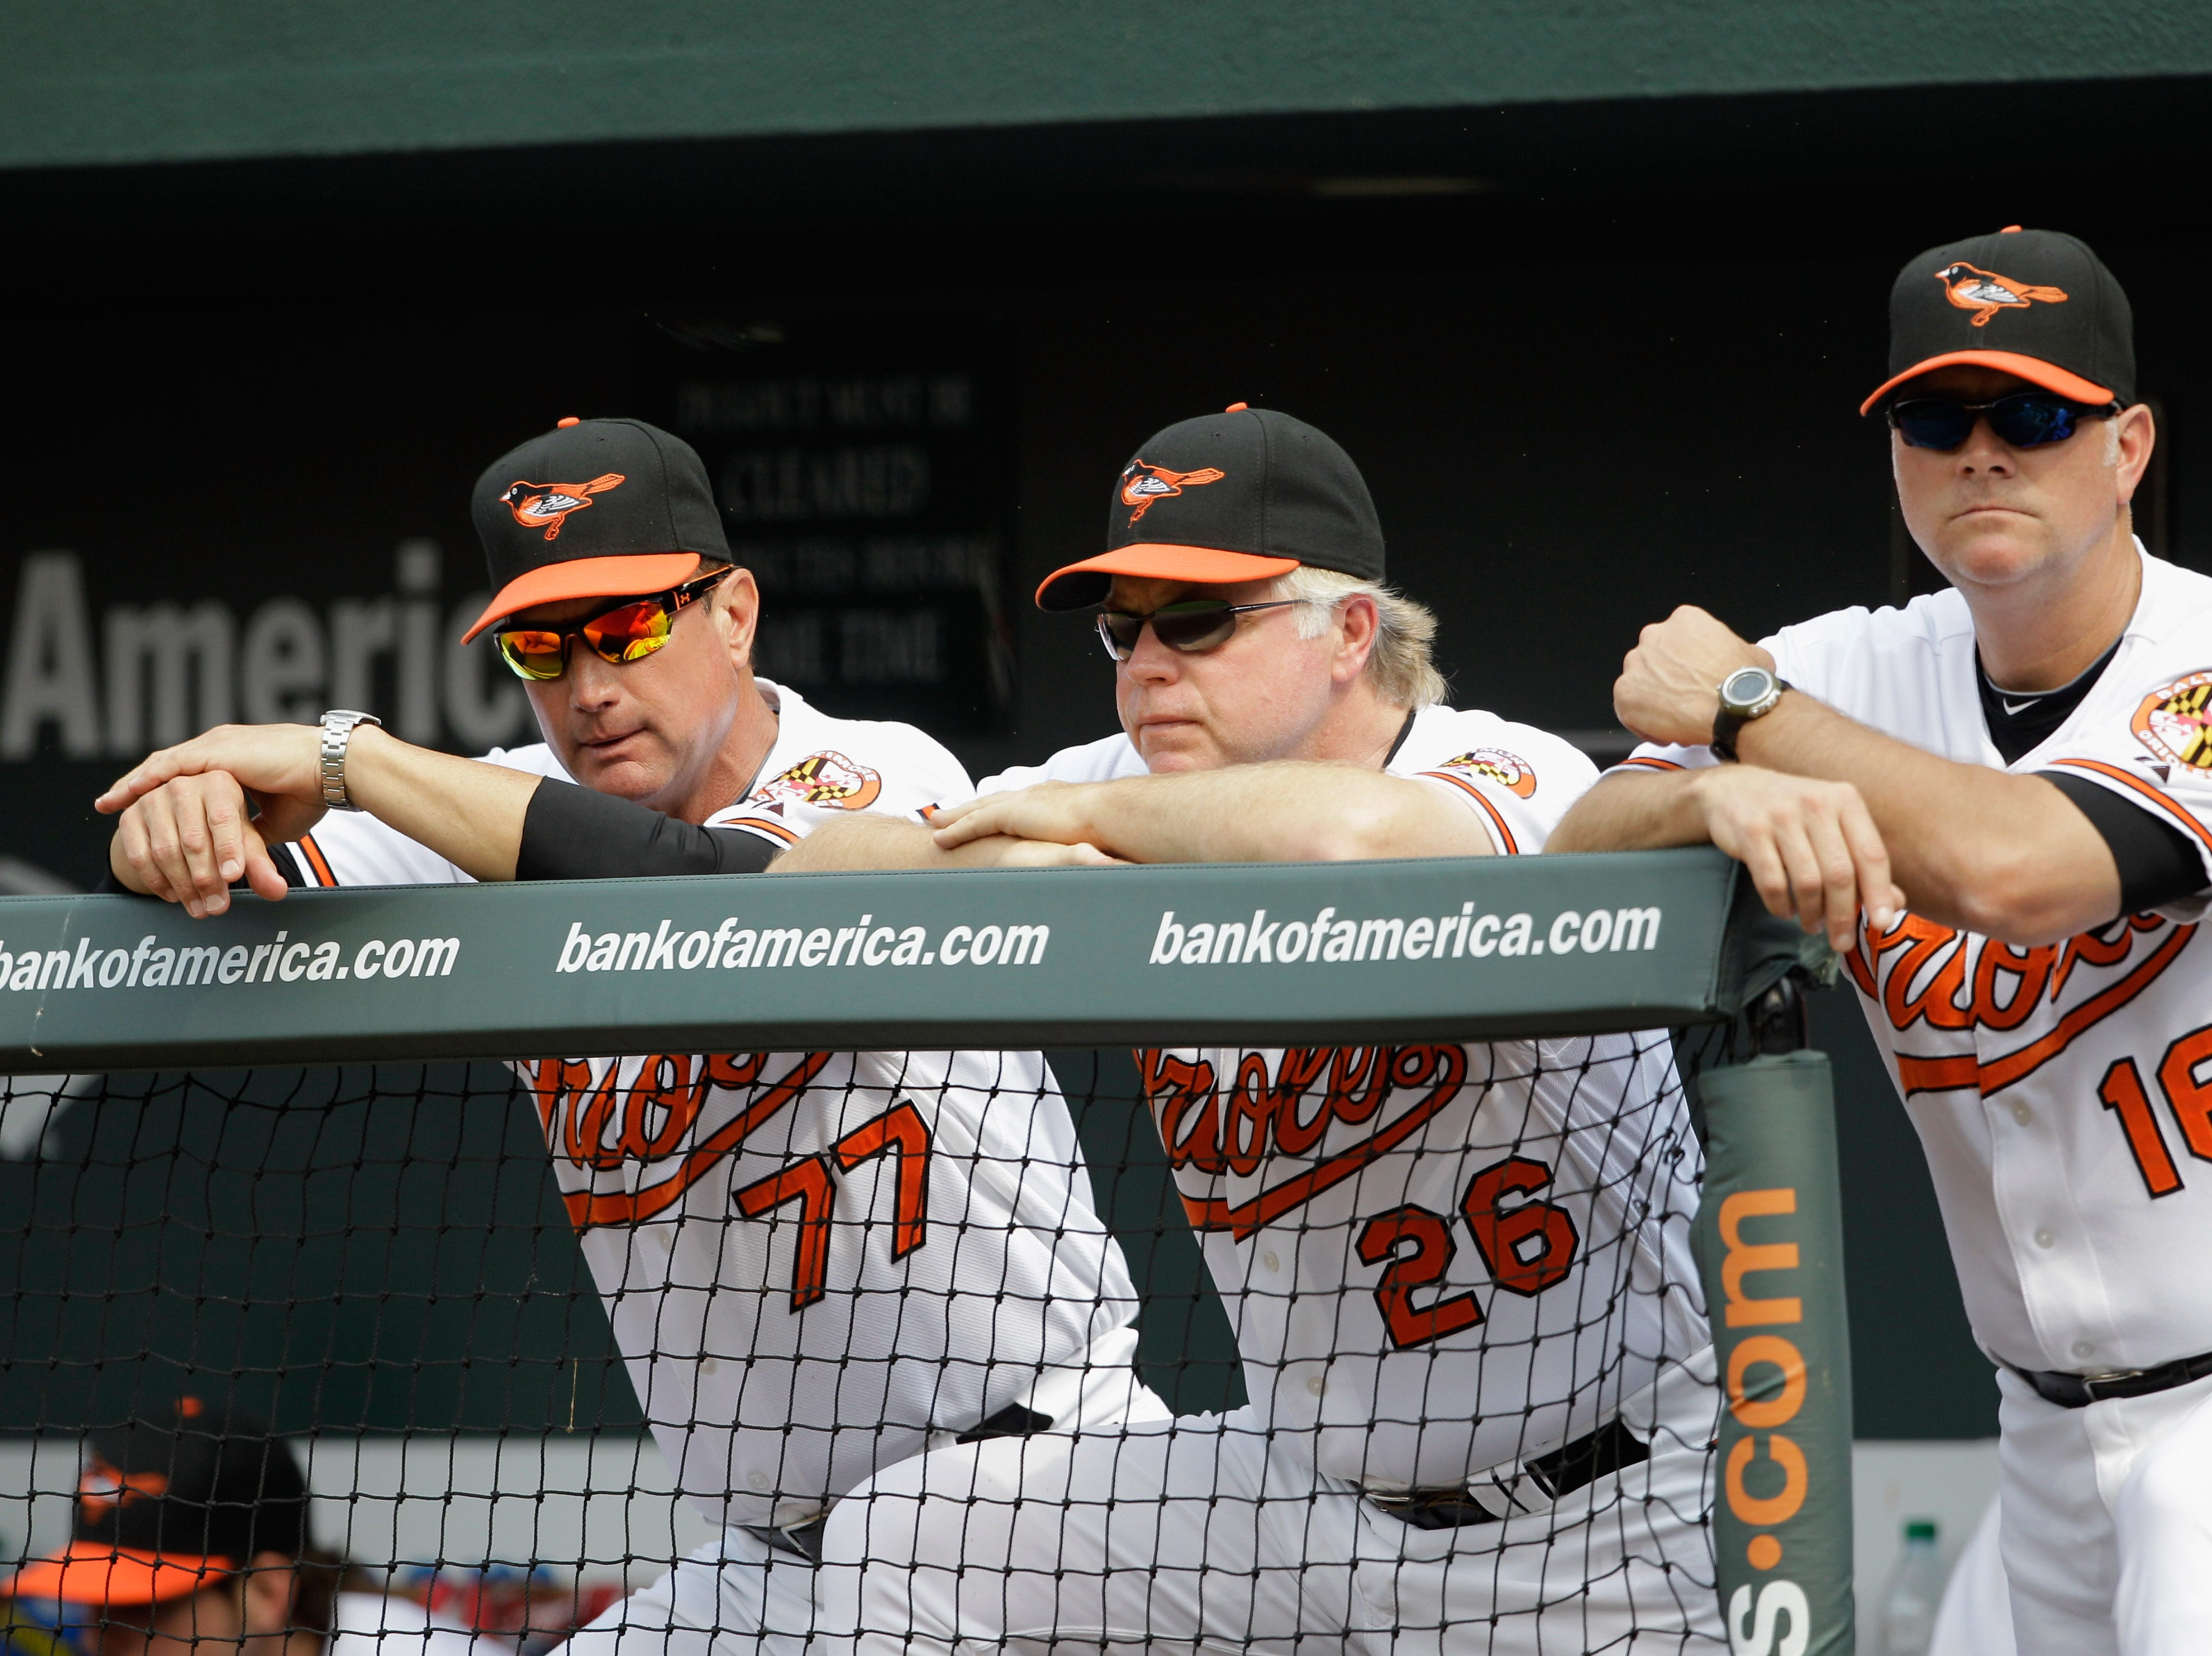 Manager Buck Showalter #26 of the Baltimore Orioles watches from the dugout with coaches John Russell #77 and Jim Presley #16 against the Toronto Blue Jays at Oriole Park at Camden Yards on June 5, 2011 in Baltimore, Maryland.  (Photo by Rob Carr/Getty Images)